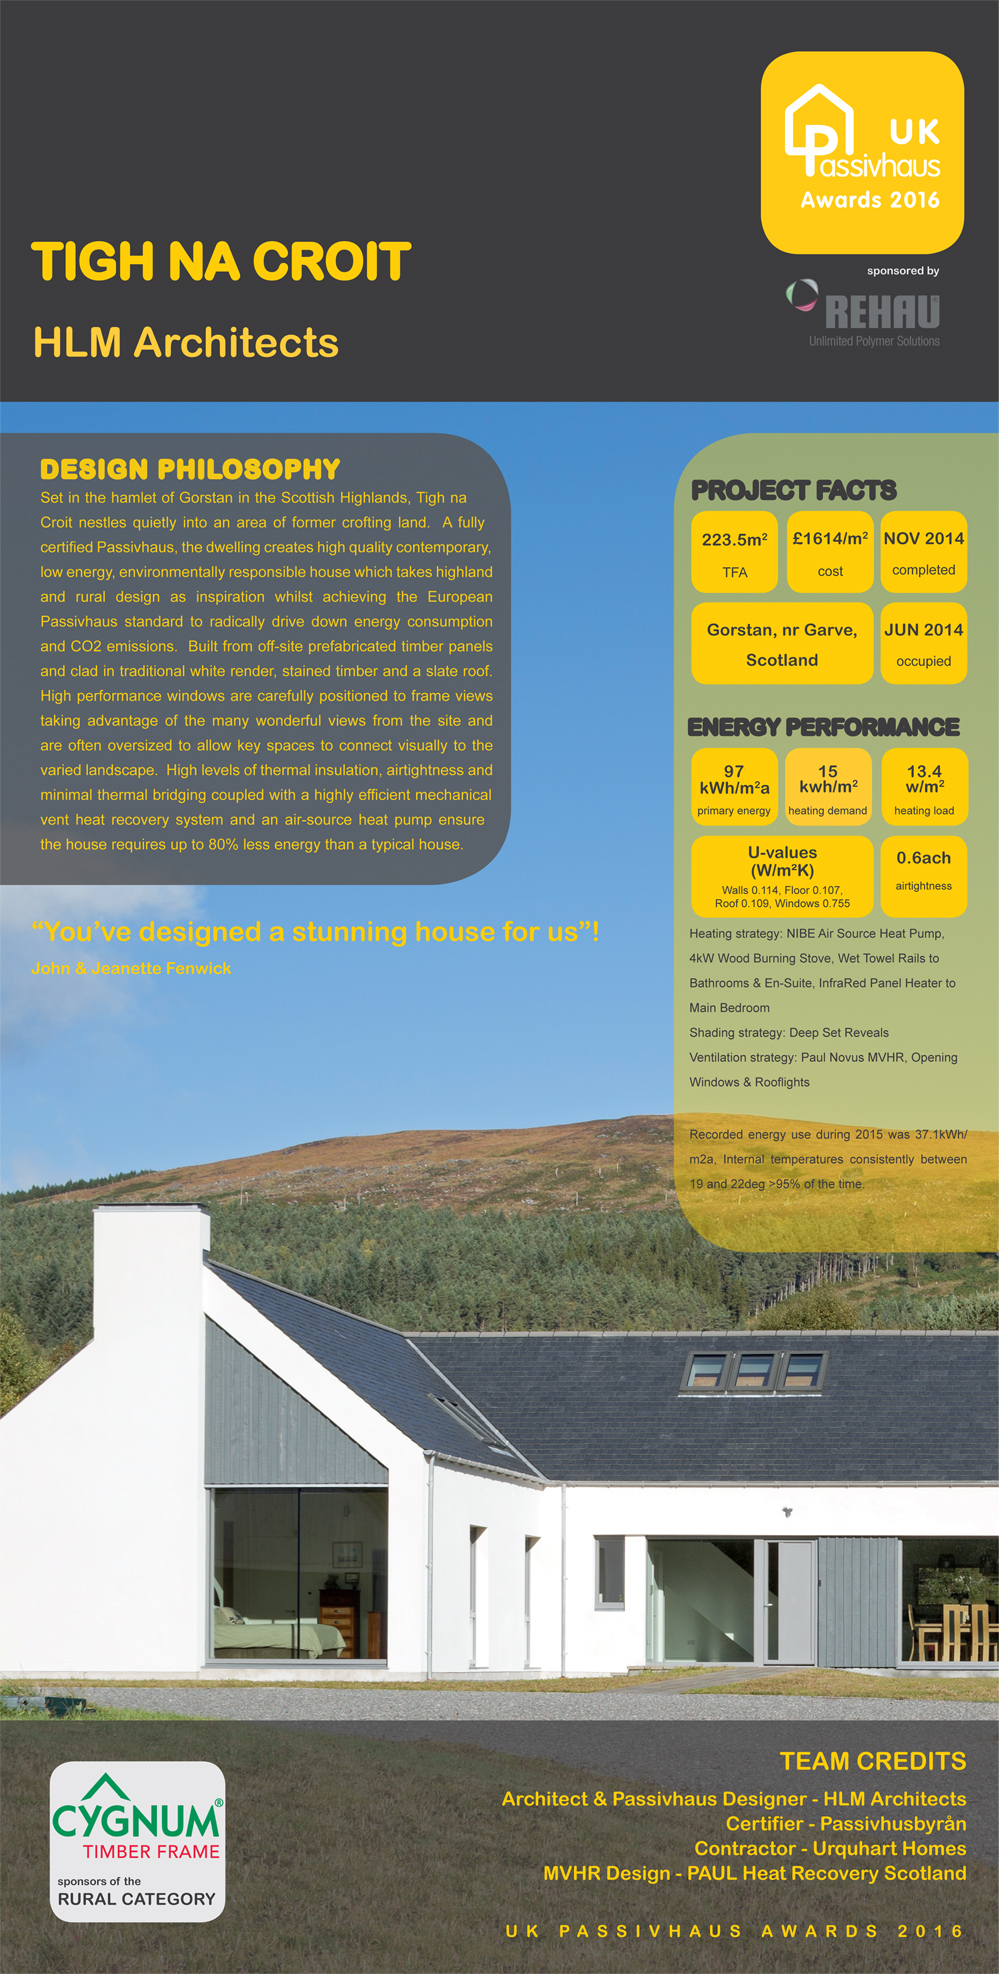 Tigh Na Croit project factfile